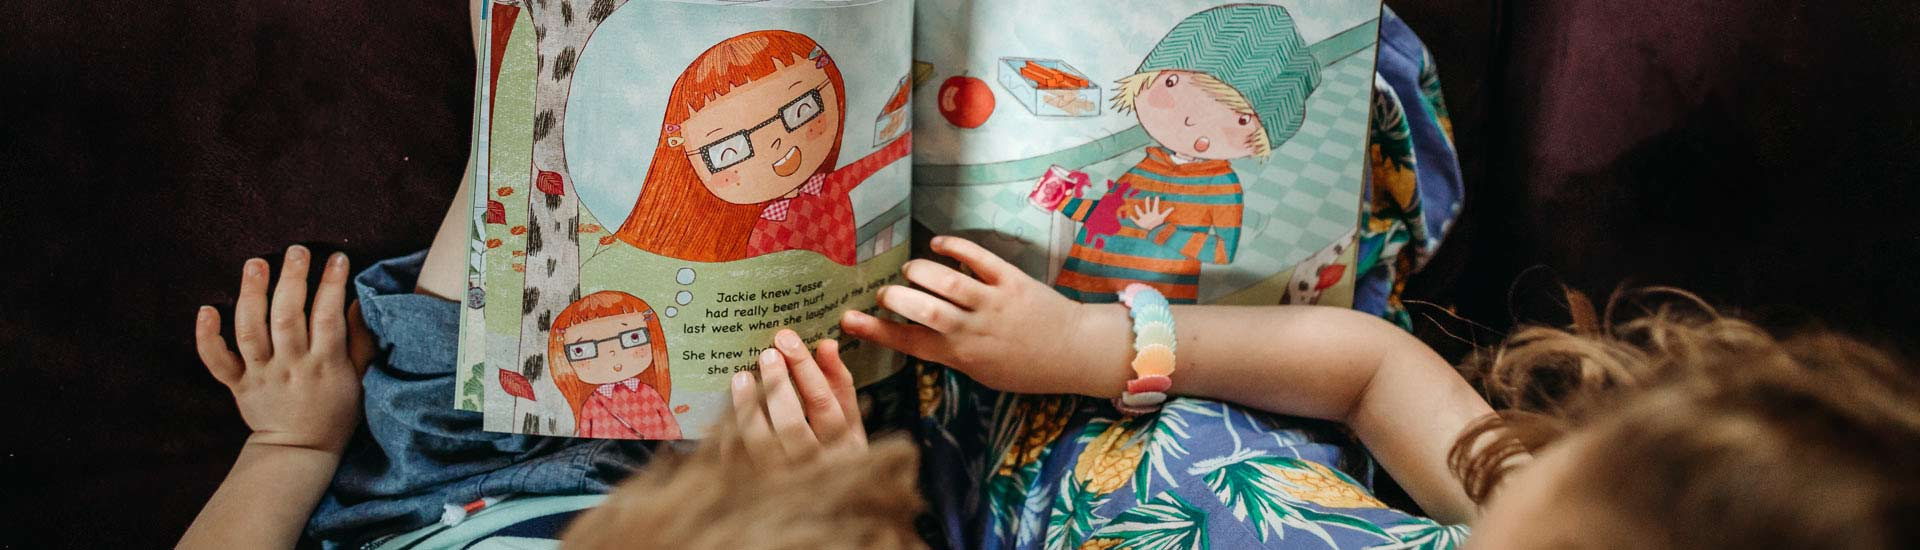 Jewish bedtime stories and music for FREE! PJ Library mails Jewish children's books & music to families.